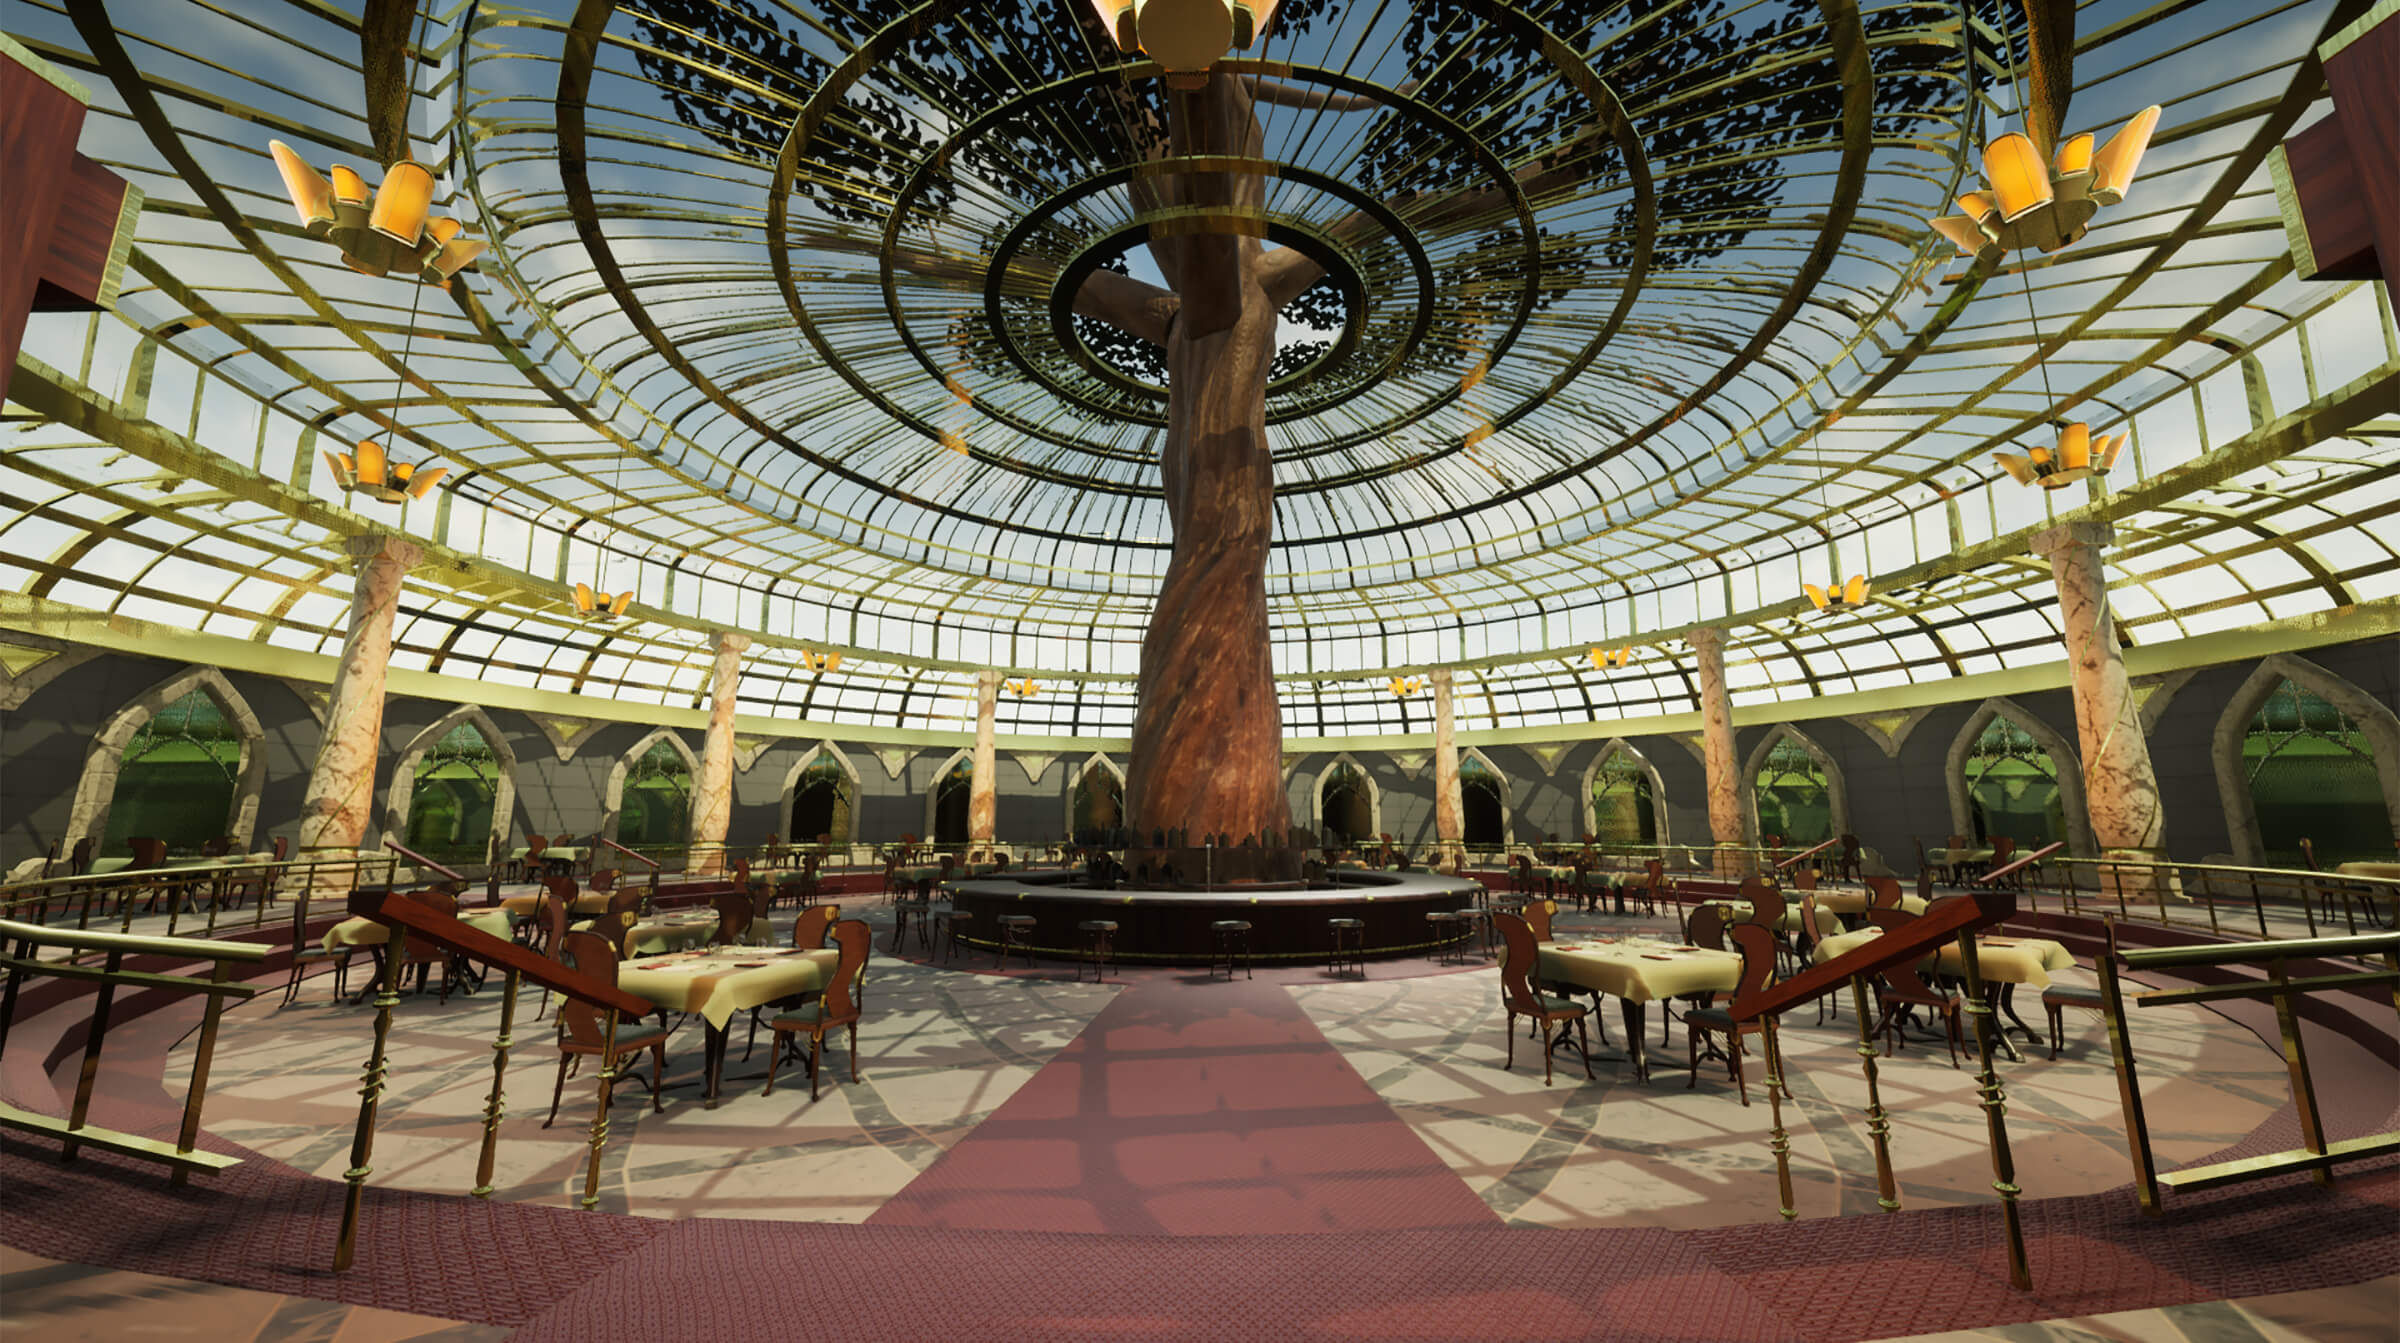 A large dining area with a tree growing through the glass roof